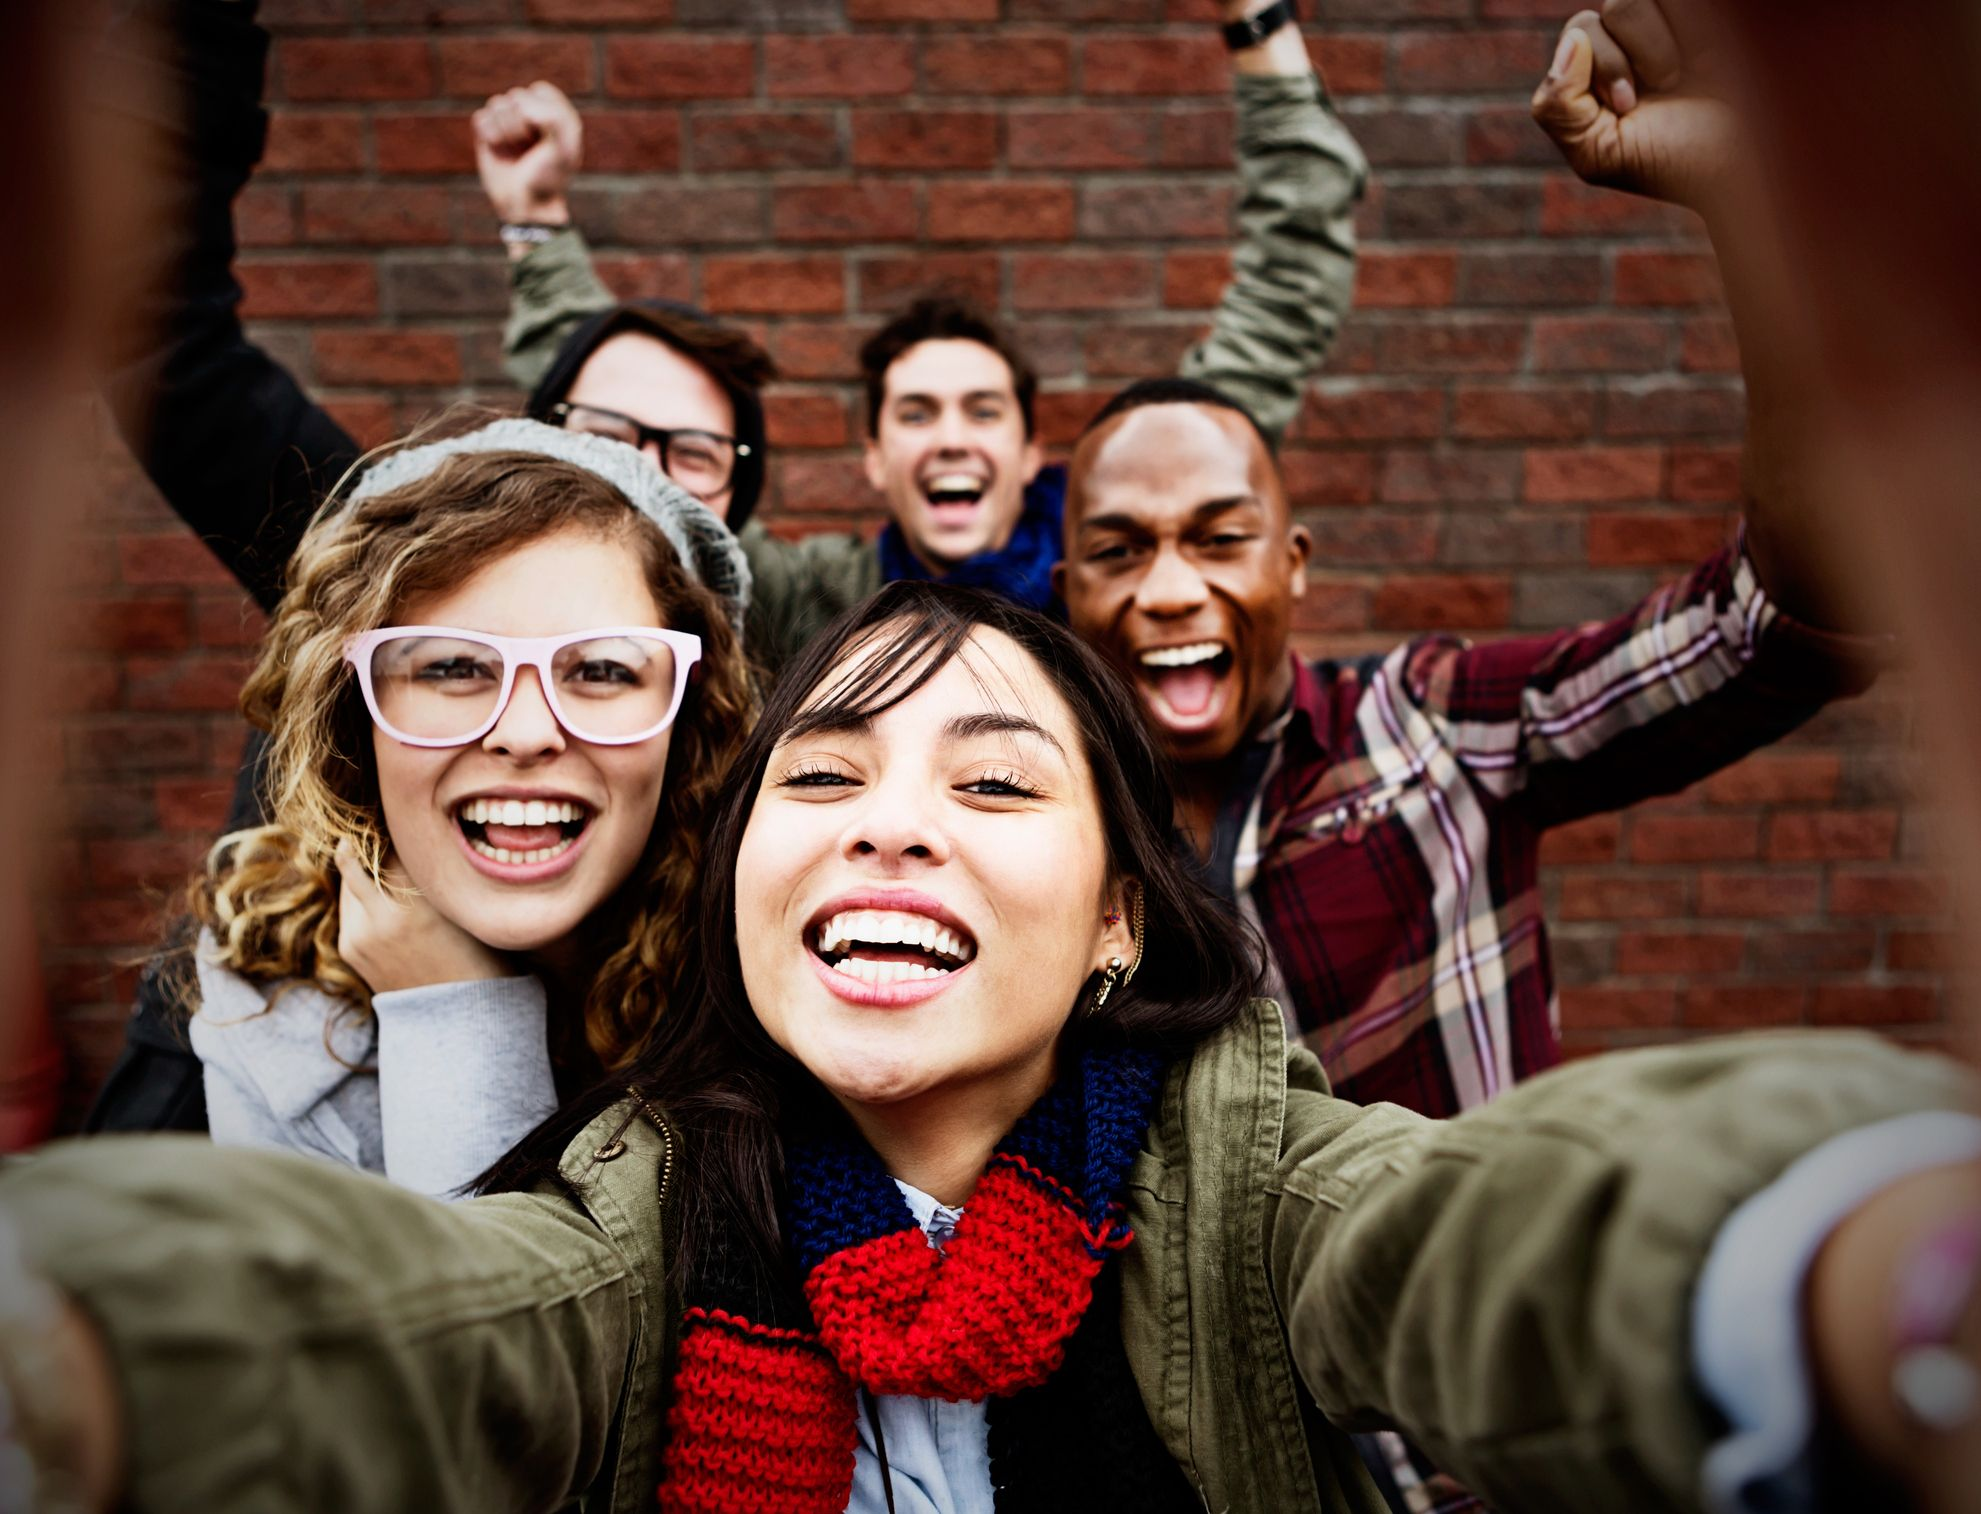 Group of smiling teens taking a selfie